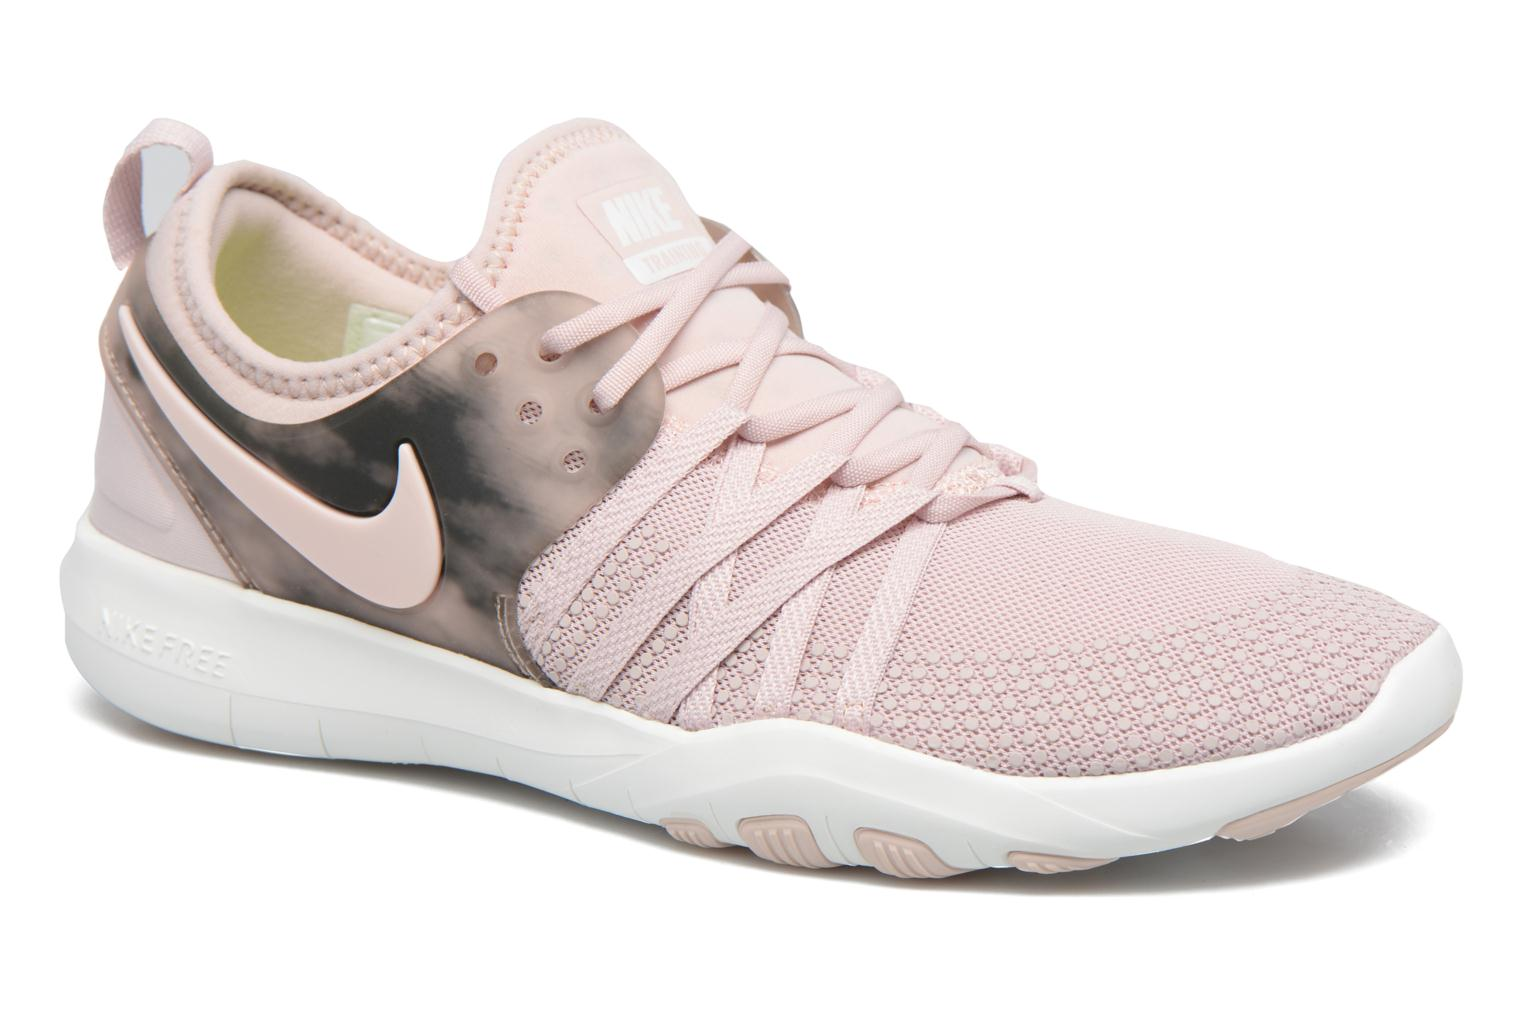 Wmns Nike Free Tr 7 Amp Silt Red/Silt Red-Solar Red-Summit White